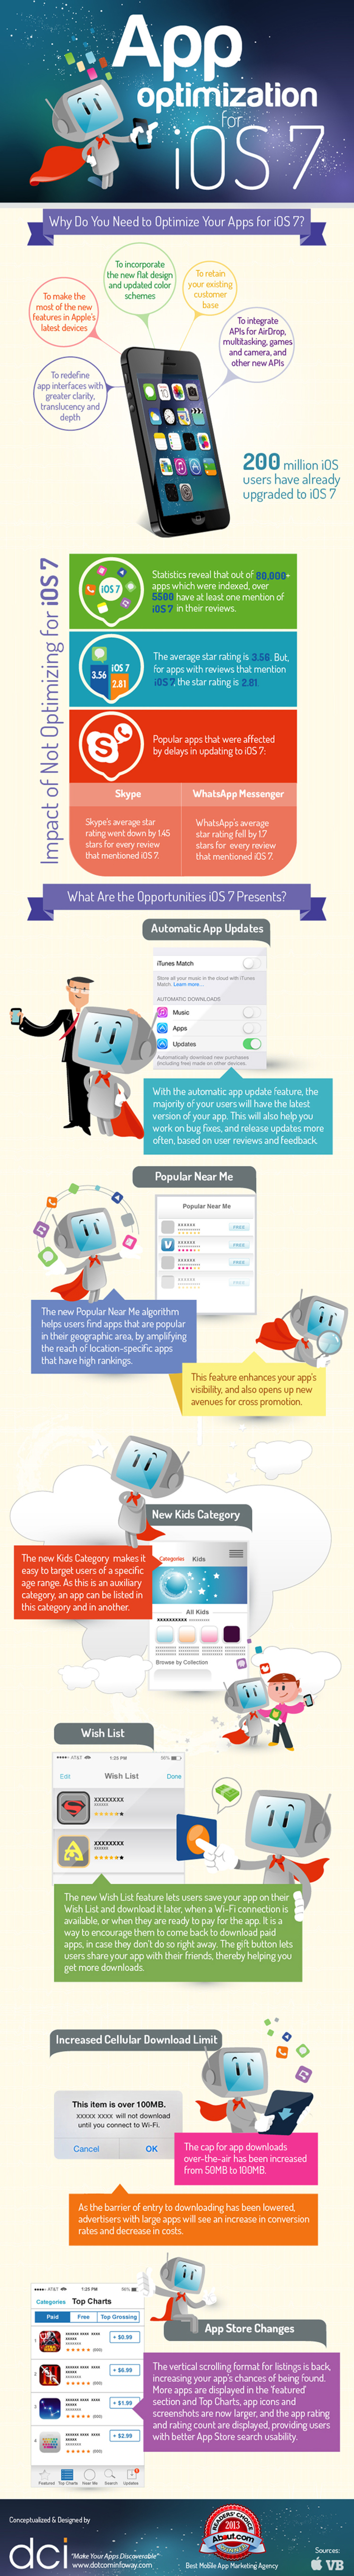 App Optimization for iOS 7  Infographic